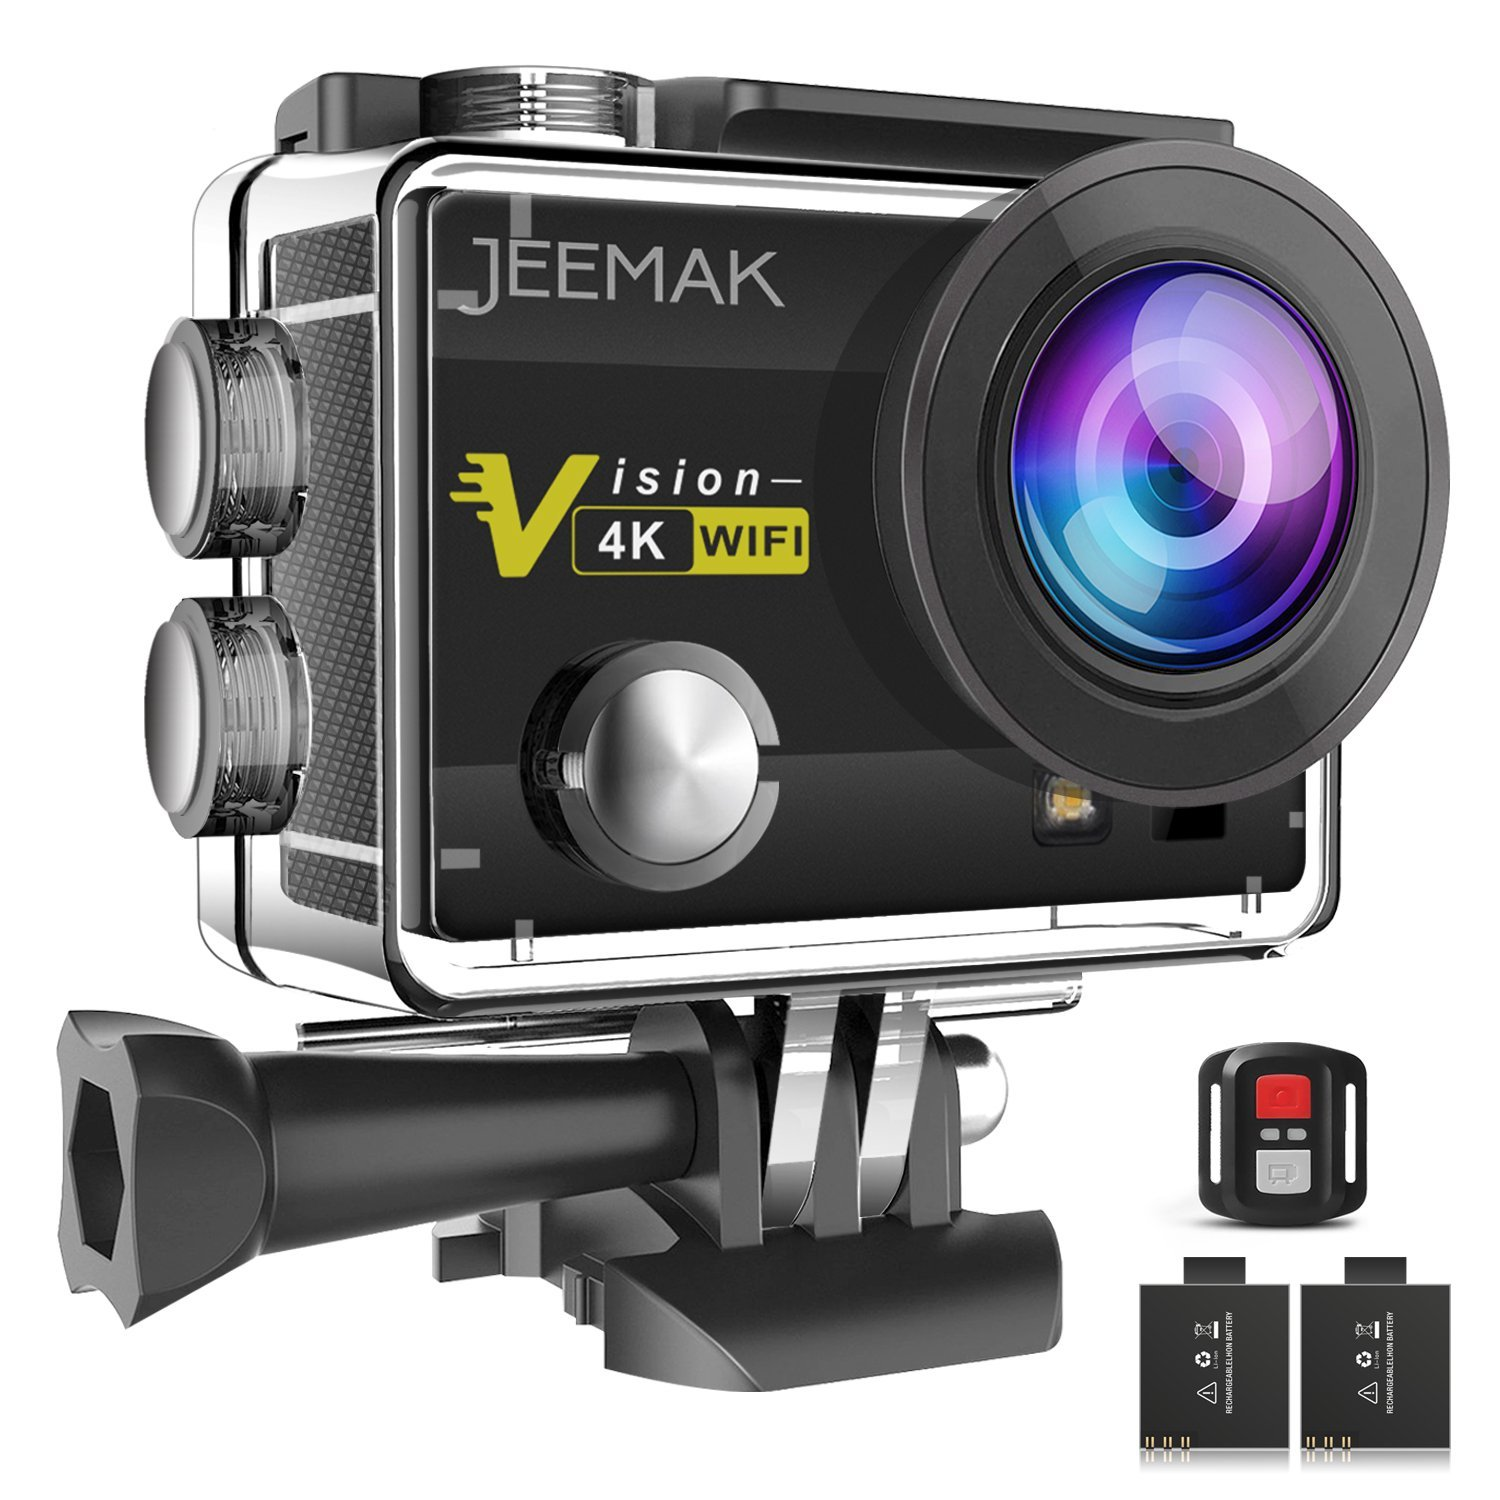 Jeemak 4K Action Camera 16MP WiFi Waterproof Sports Camera 170° Ultra Wide Angle Len with Remote Control 2 Pcs Rechargeable Batteries and Portable Package Blue 4335039865